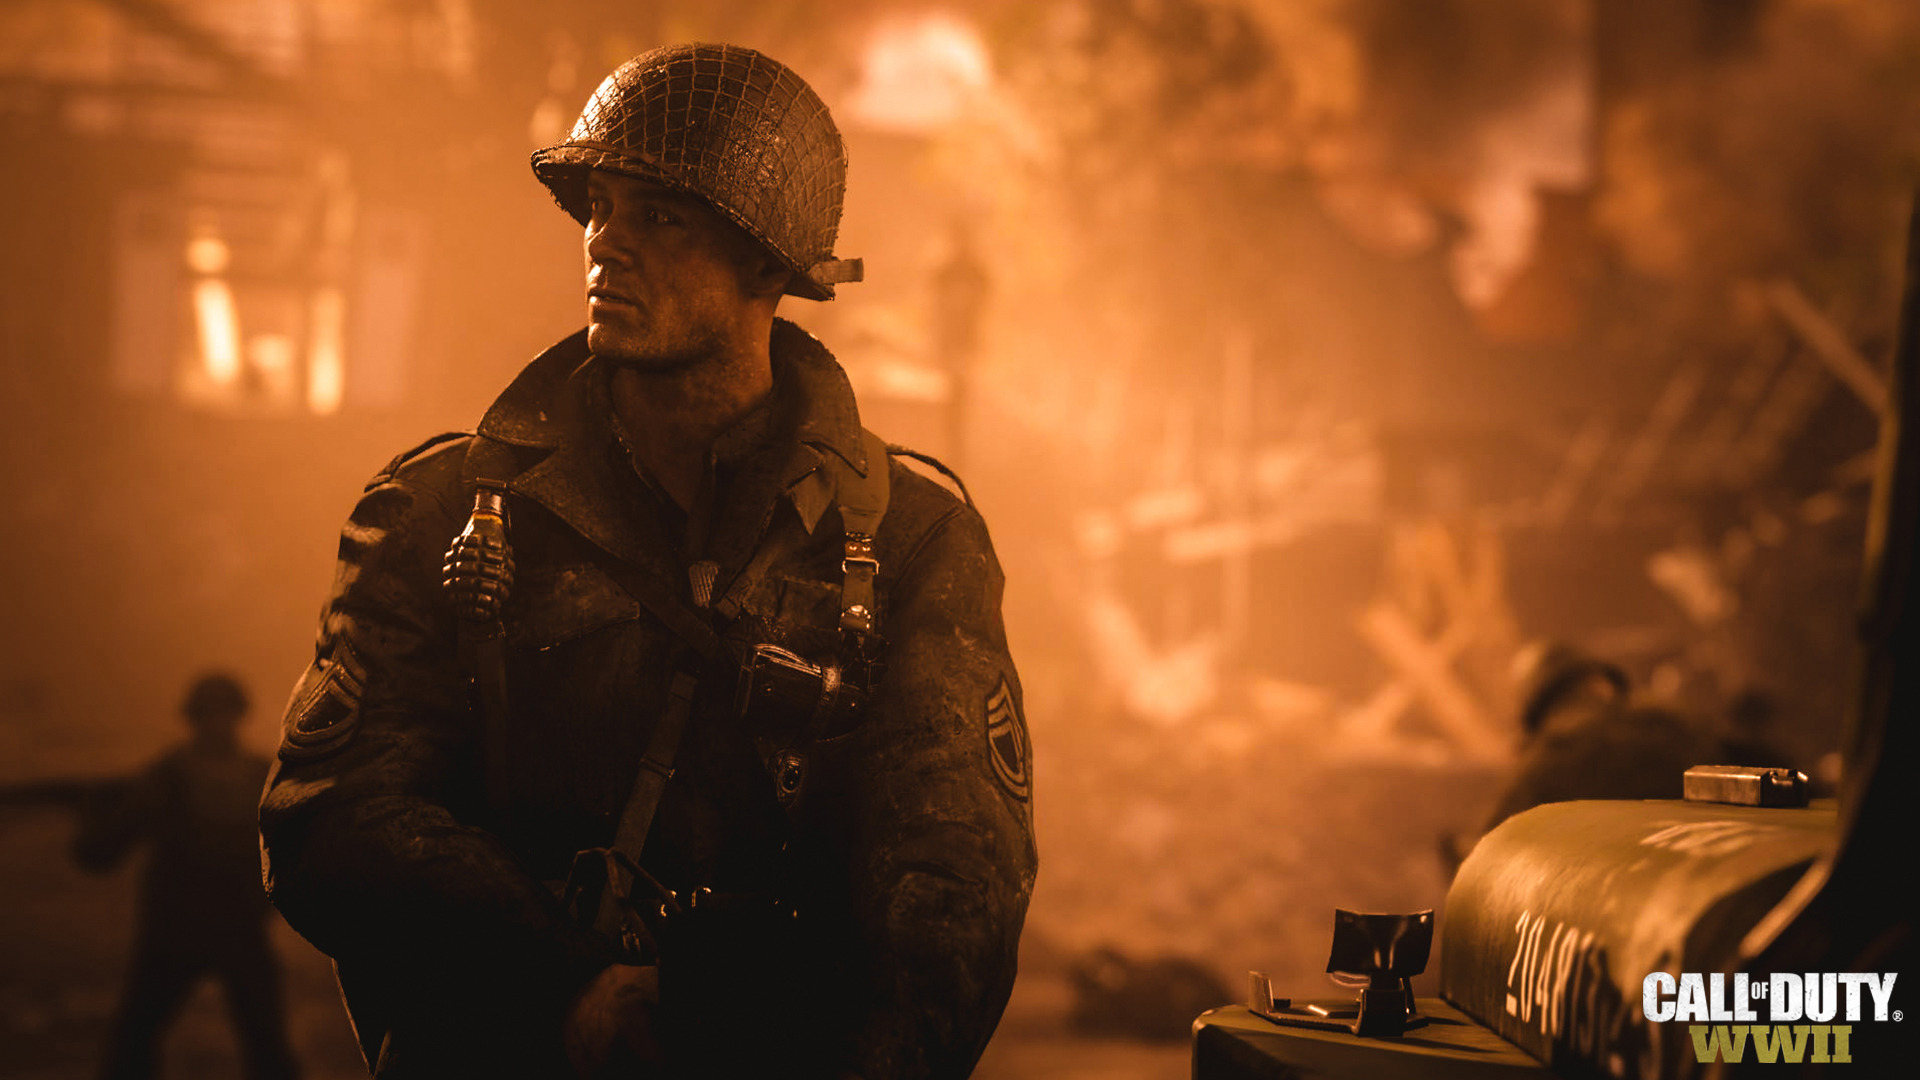 Call Of Duty Wwii Soldier Hd Games 4k Wallpapers Images